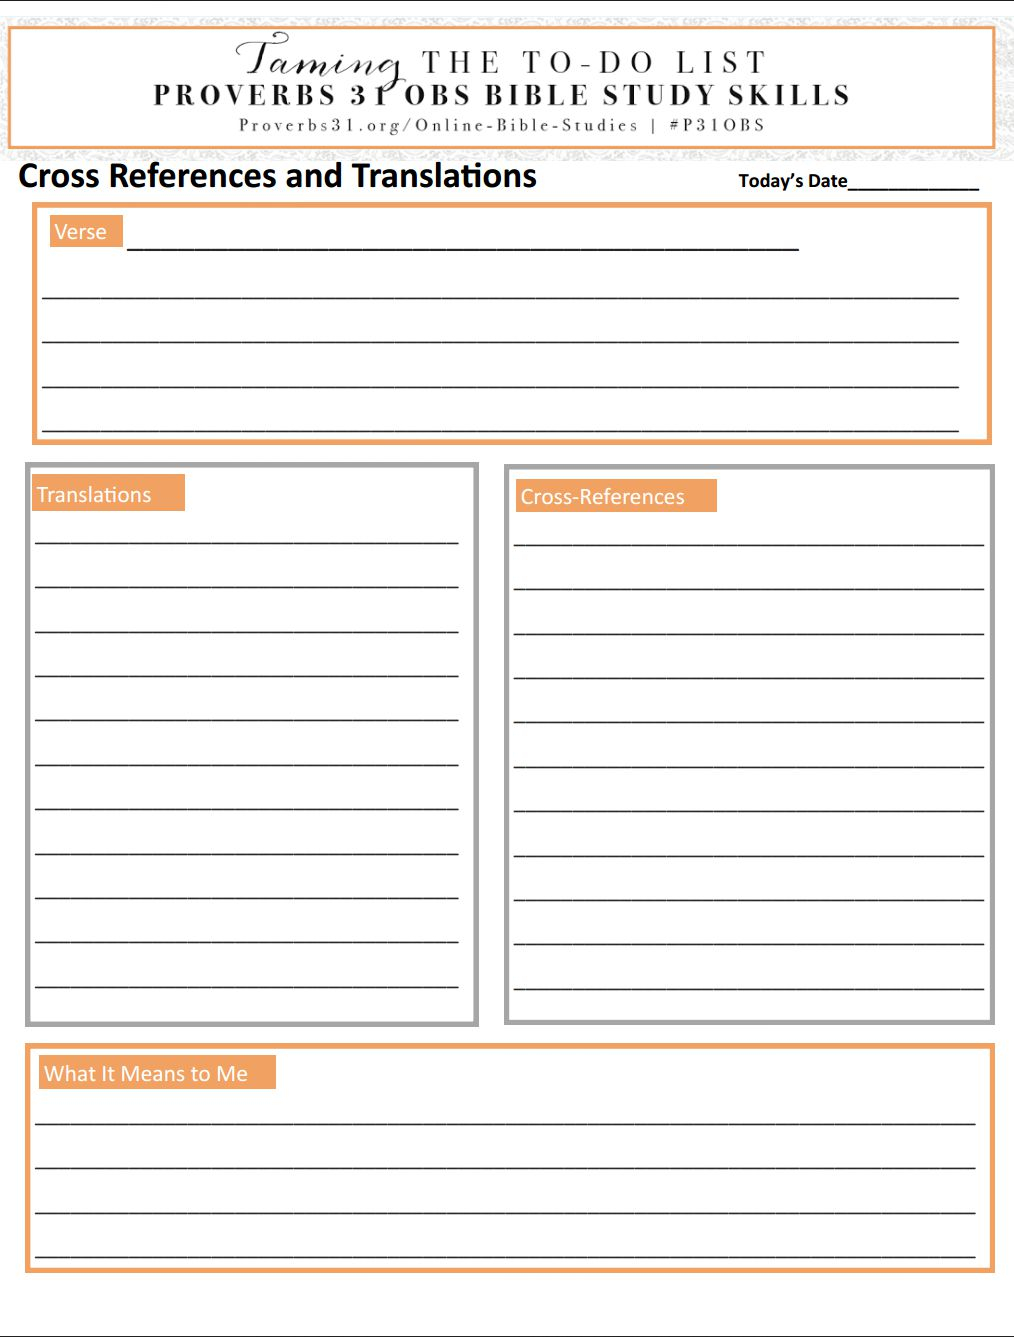 Bible Study Skills: Translations And Cross-References | P31 | Online - Free Online Printable Bible Studies